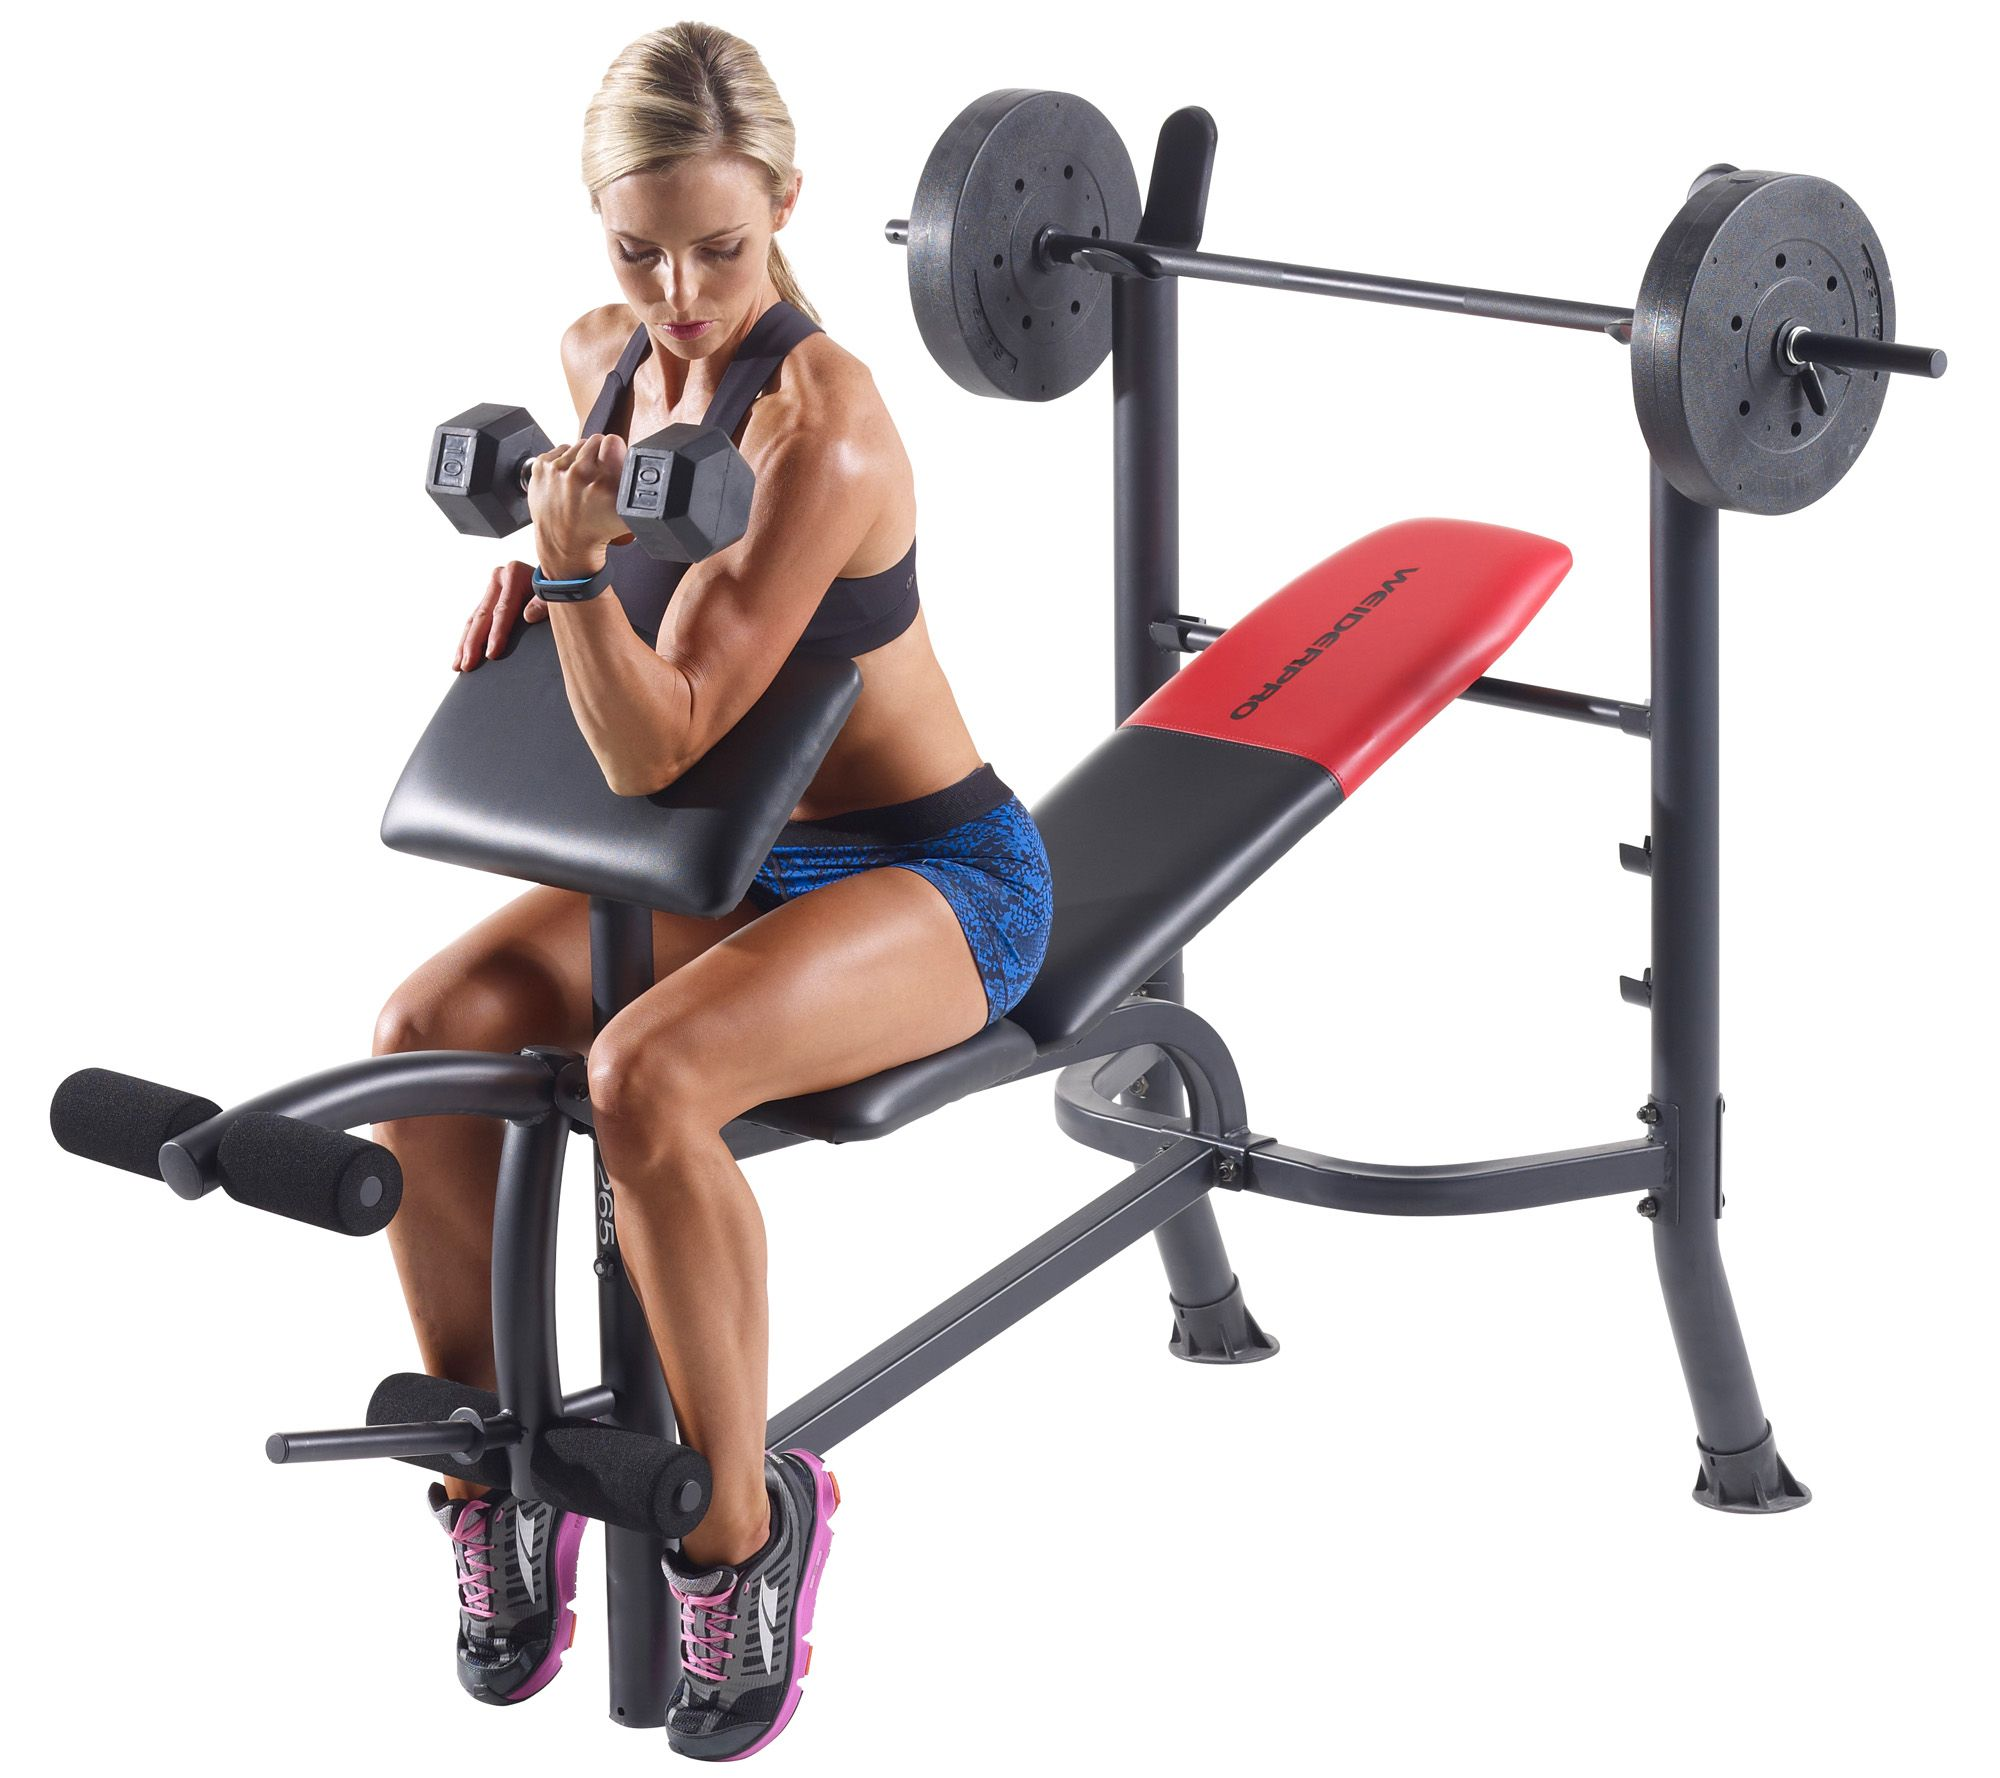 Weider Pro 265 Standard Bench Bar And Weightset Page 1 Qvc Com